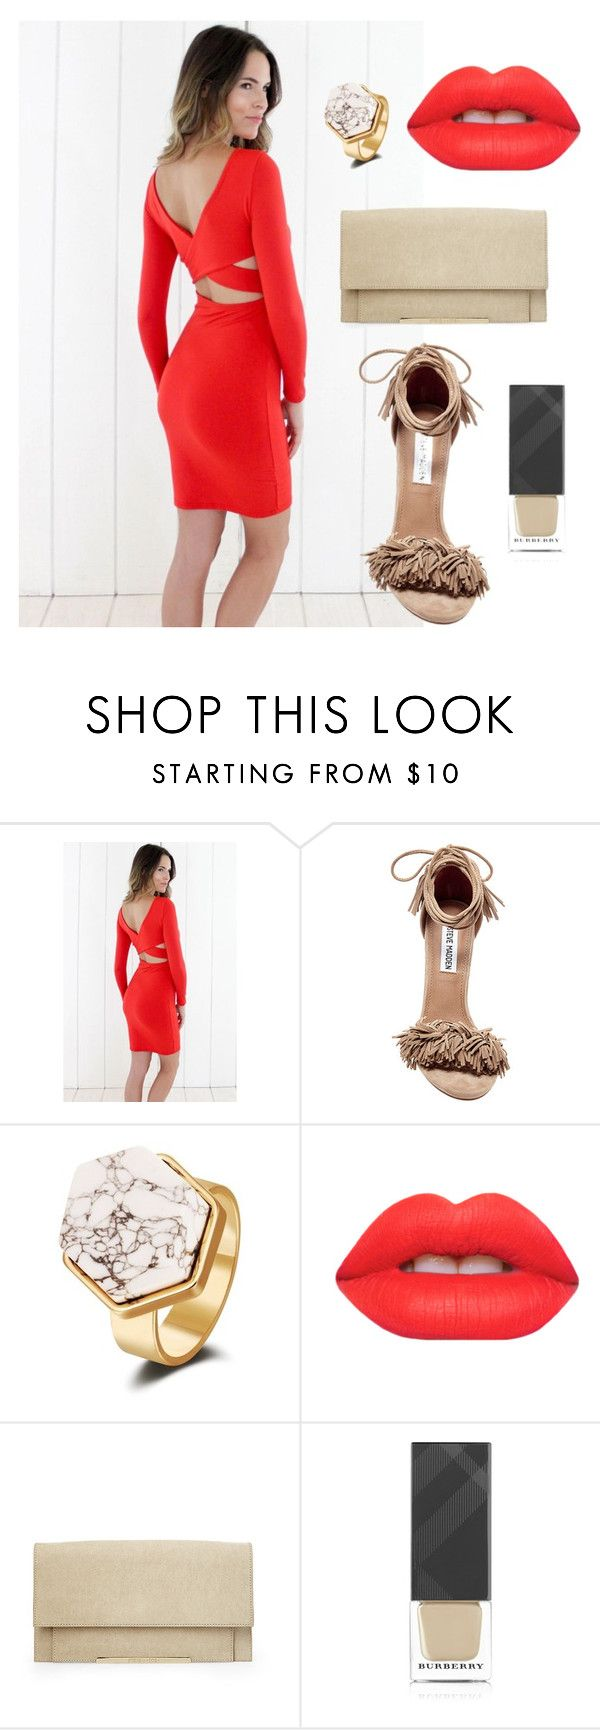 """""""Rouge Radiance"""" by caciqueboutique on Polyvore featuring Steve Madden, Lime Crime, Burberry, stilettos, nude, redlipstick, bodycon and caciqueboutique"""